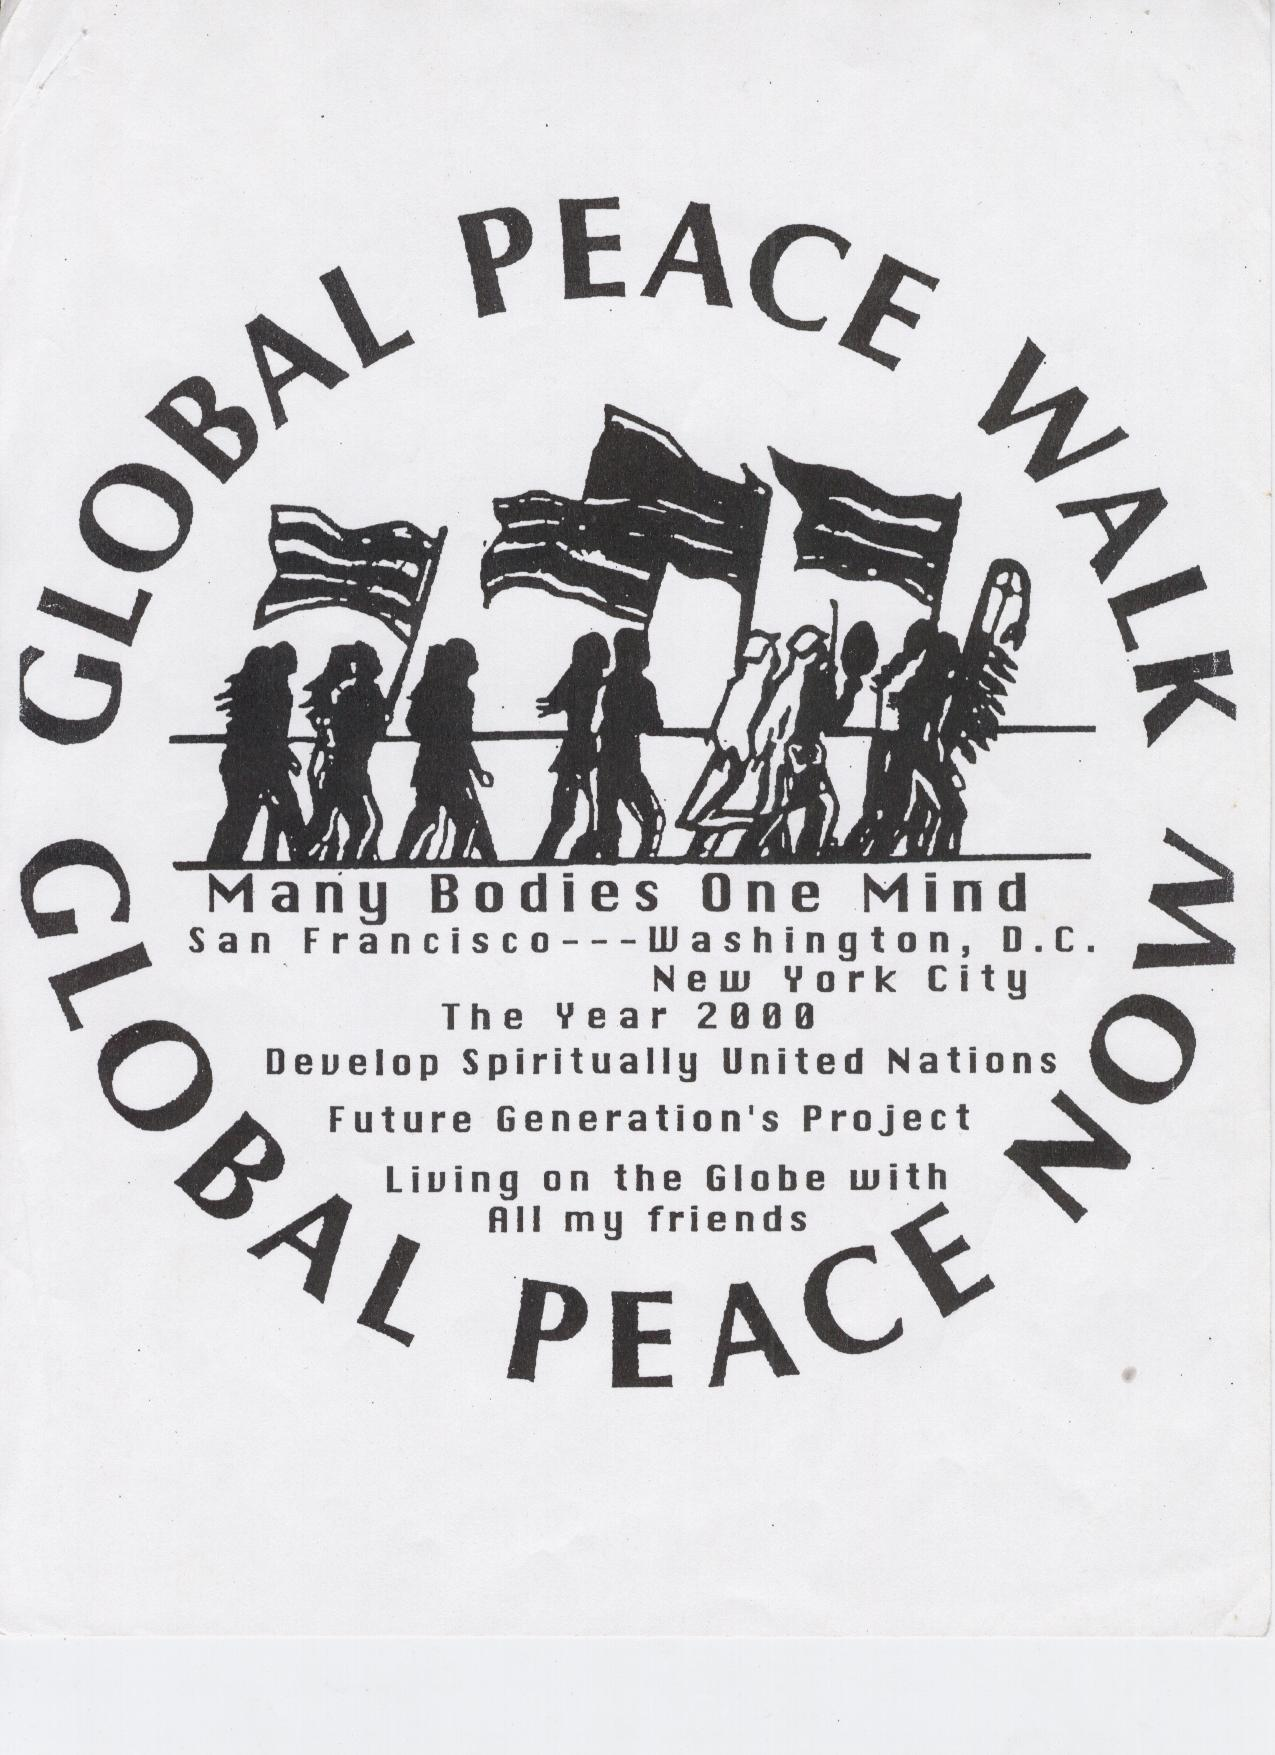 Global Peace Walk has crossed the country in 1995 and in 2000 -